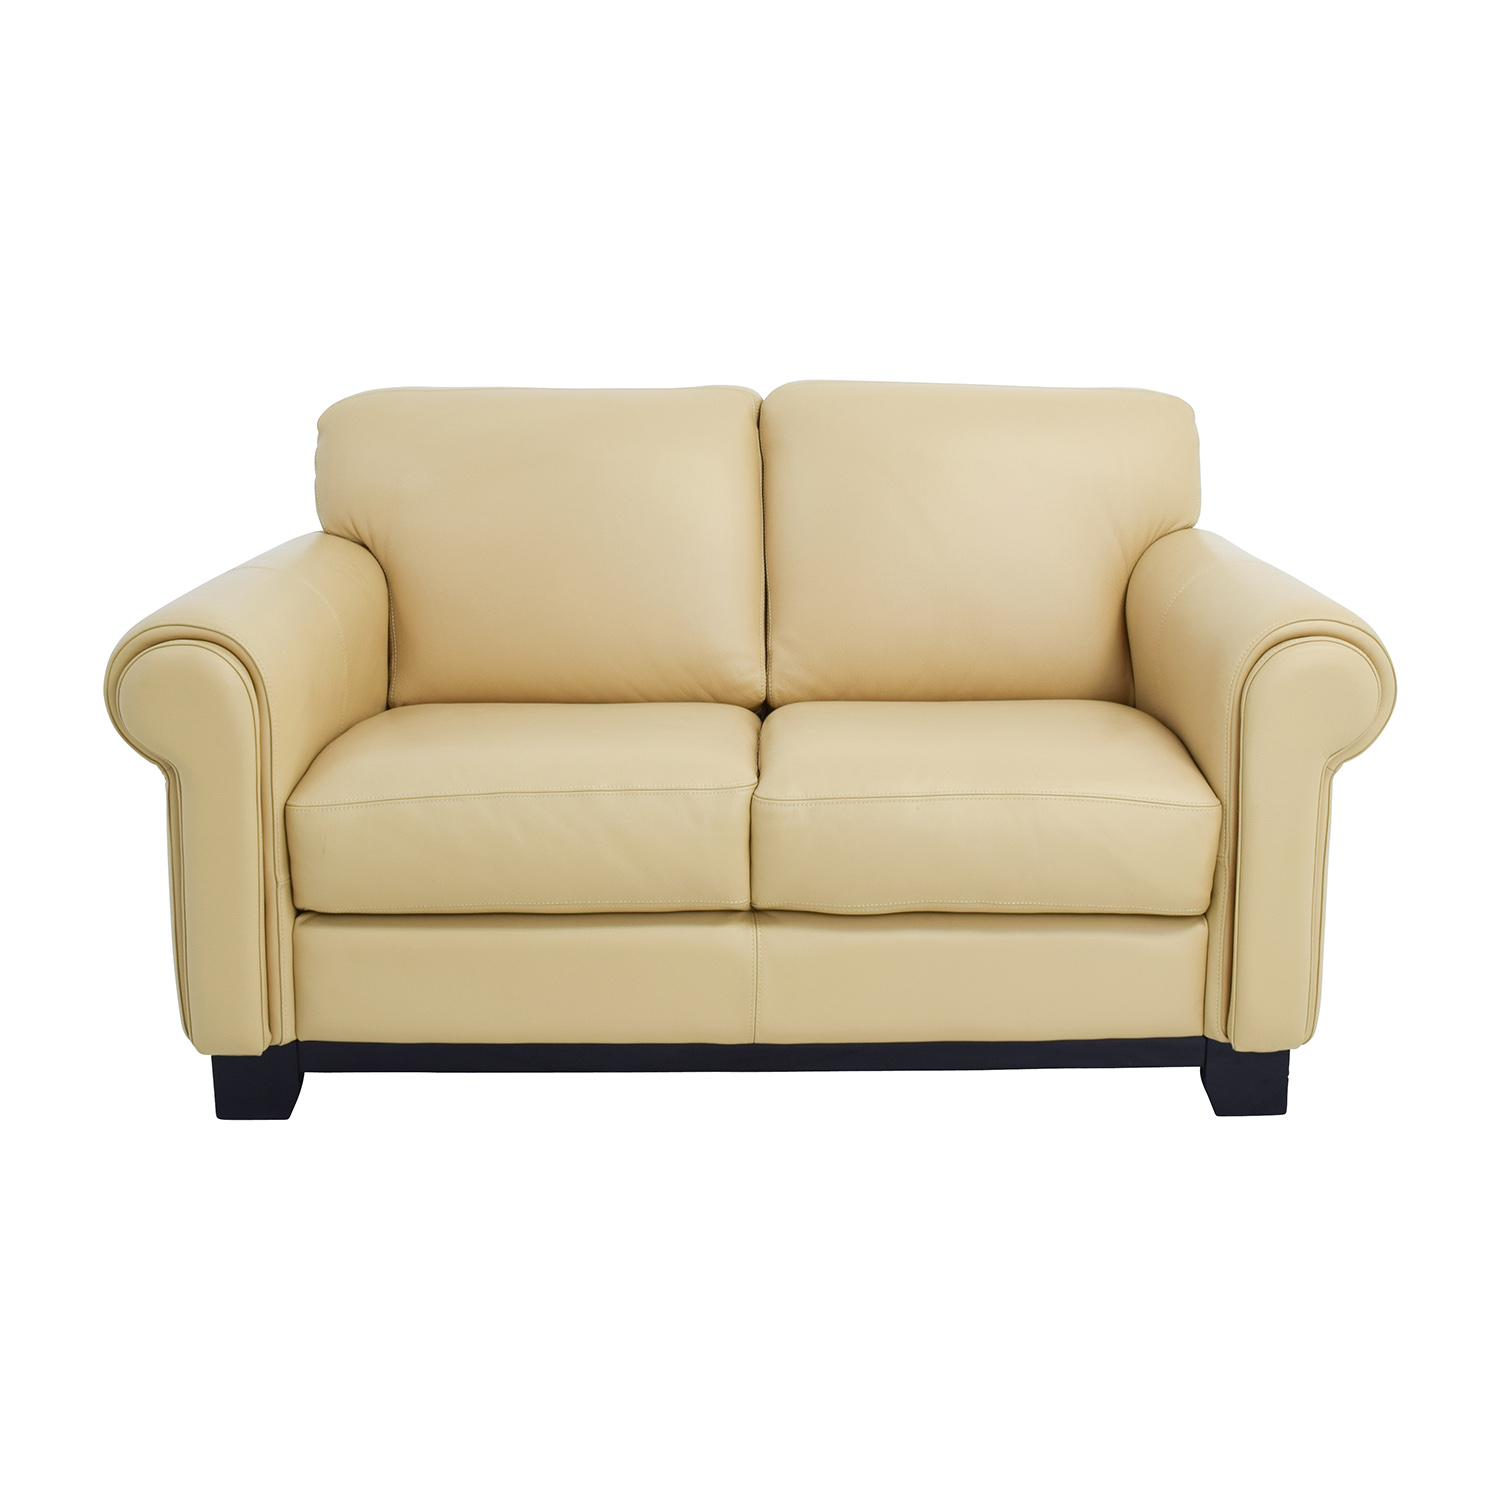 Cau Dax Beige Leather Two Seat Cushion Loveseat Online